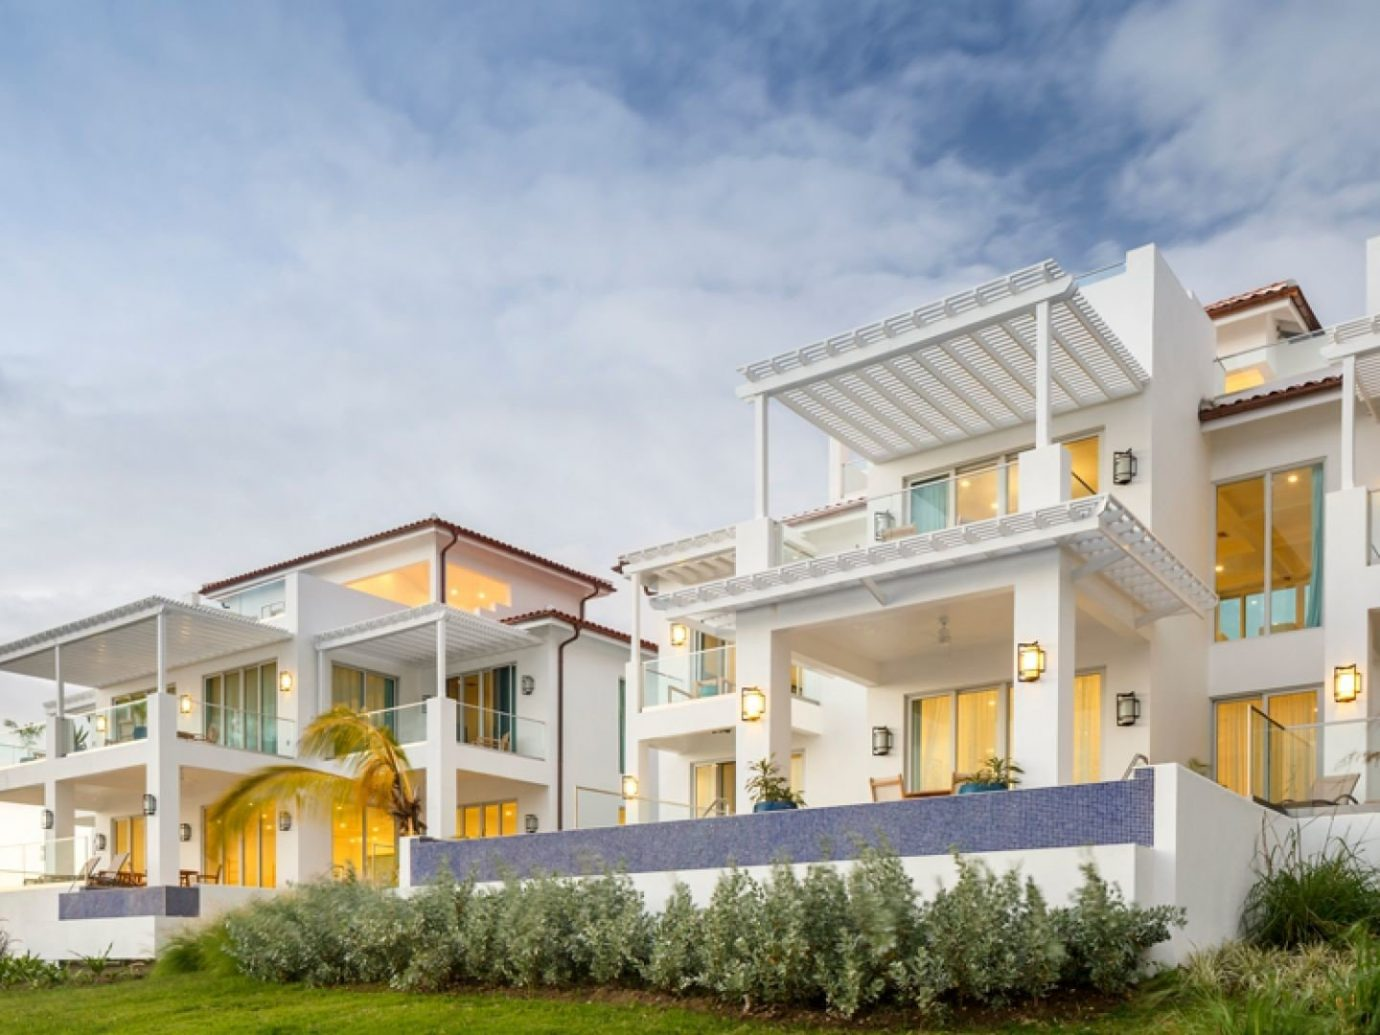 All-Inclusive Resorts Budget caribbean Hotels property home residential area house real estate Architecture Villa elevation estate apartment facade building mixed use cottage condominium sky window